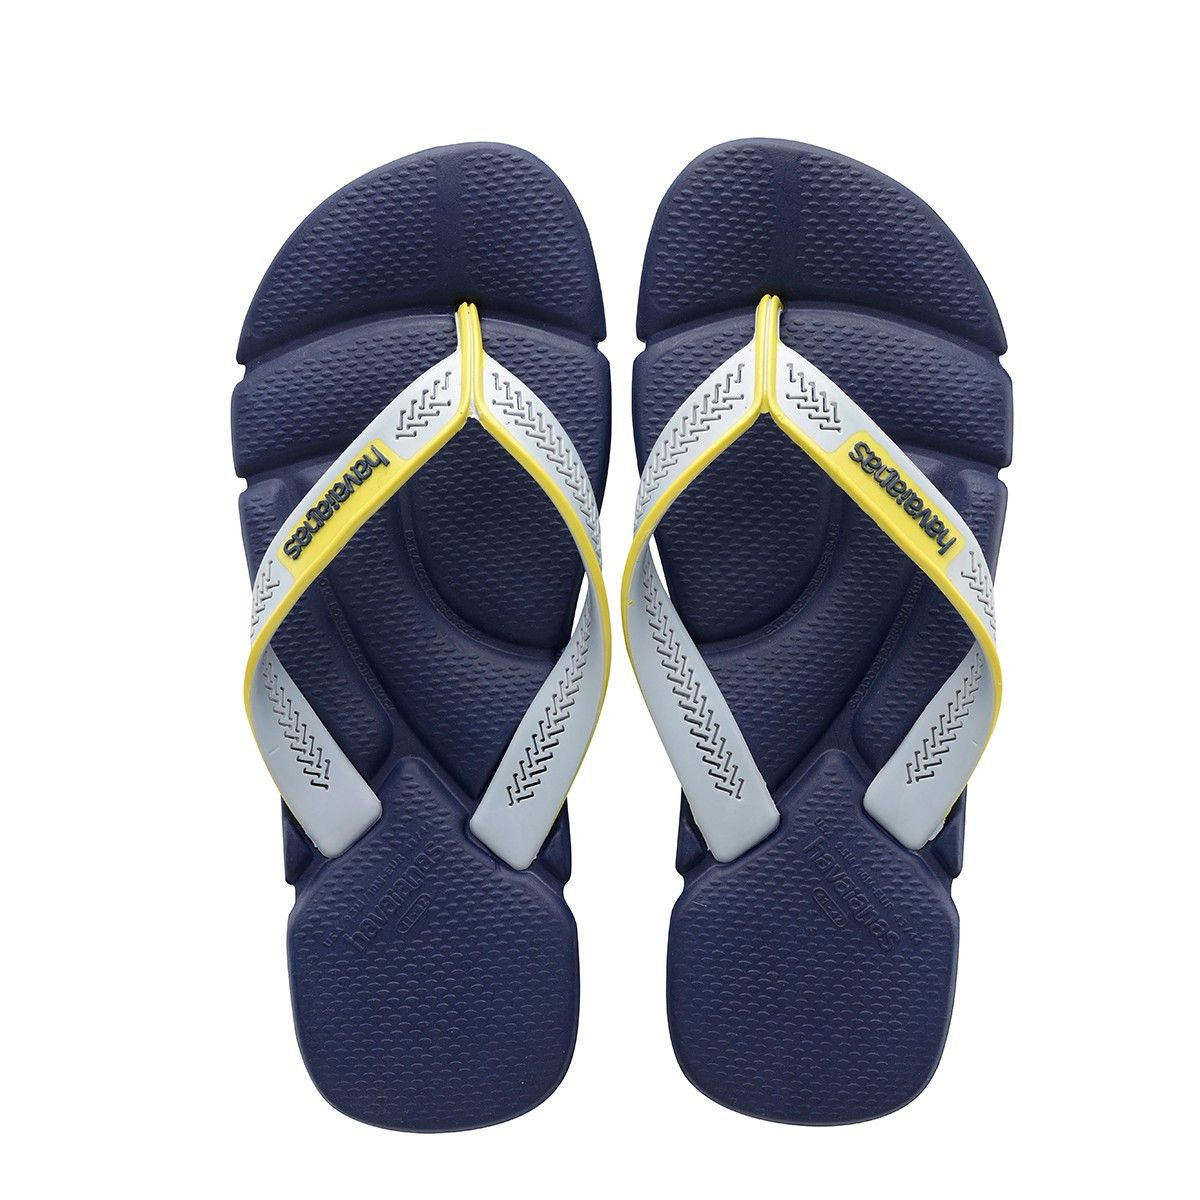 bff3aa136 Havaianas Power Navy Blue Grey Ice Flip Flop Price From  £16.72